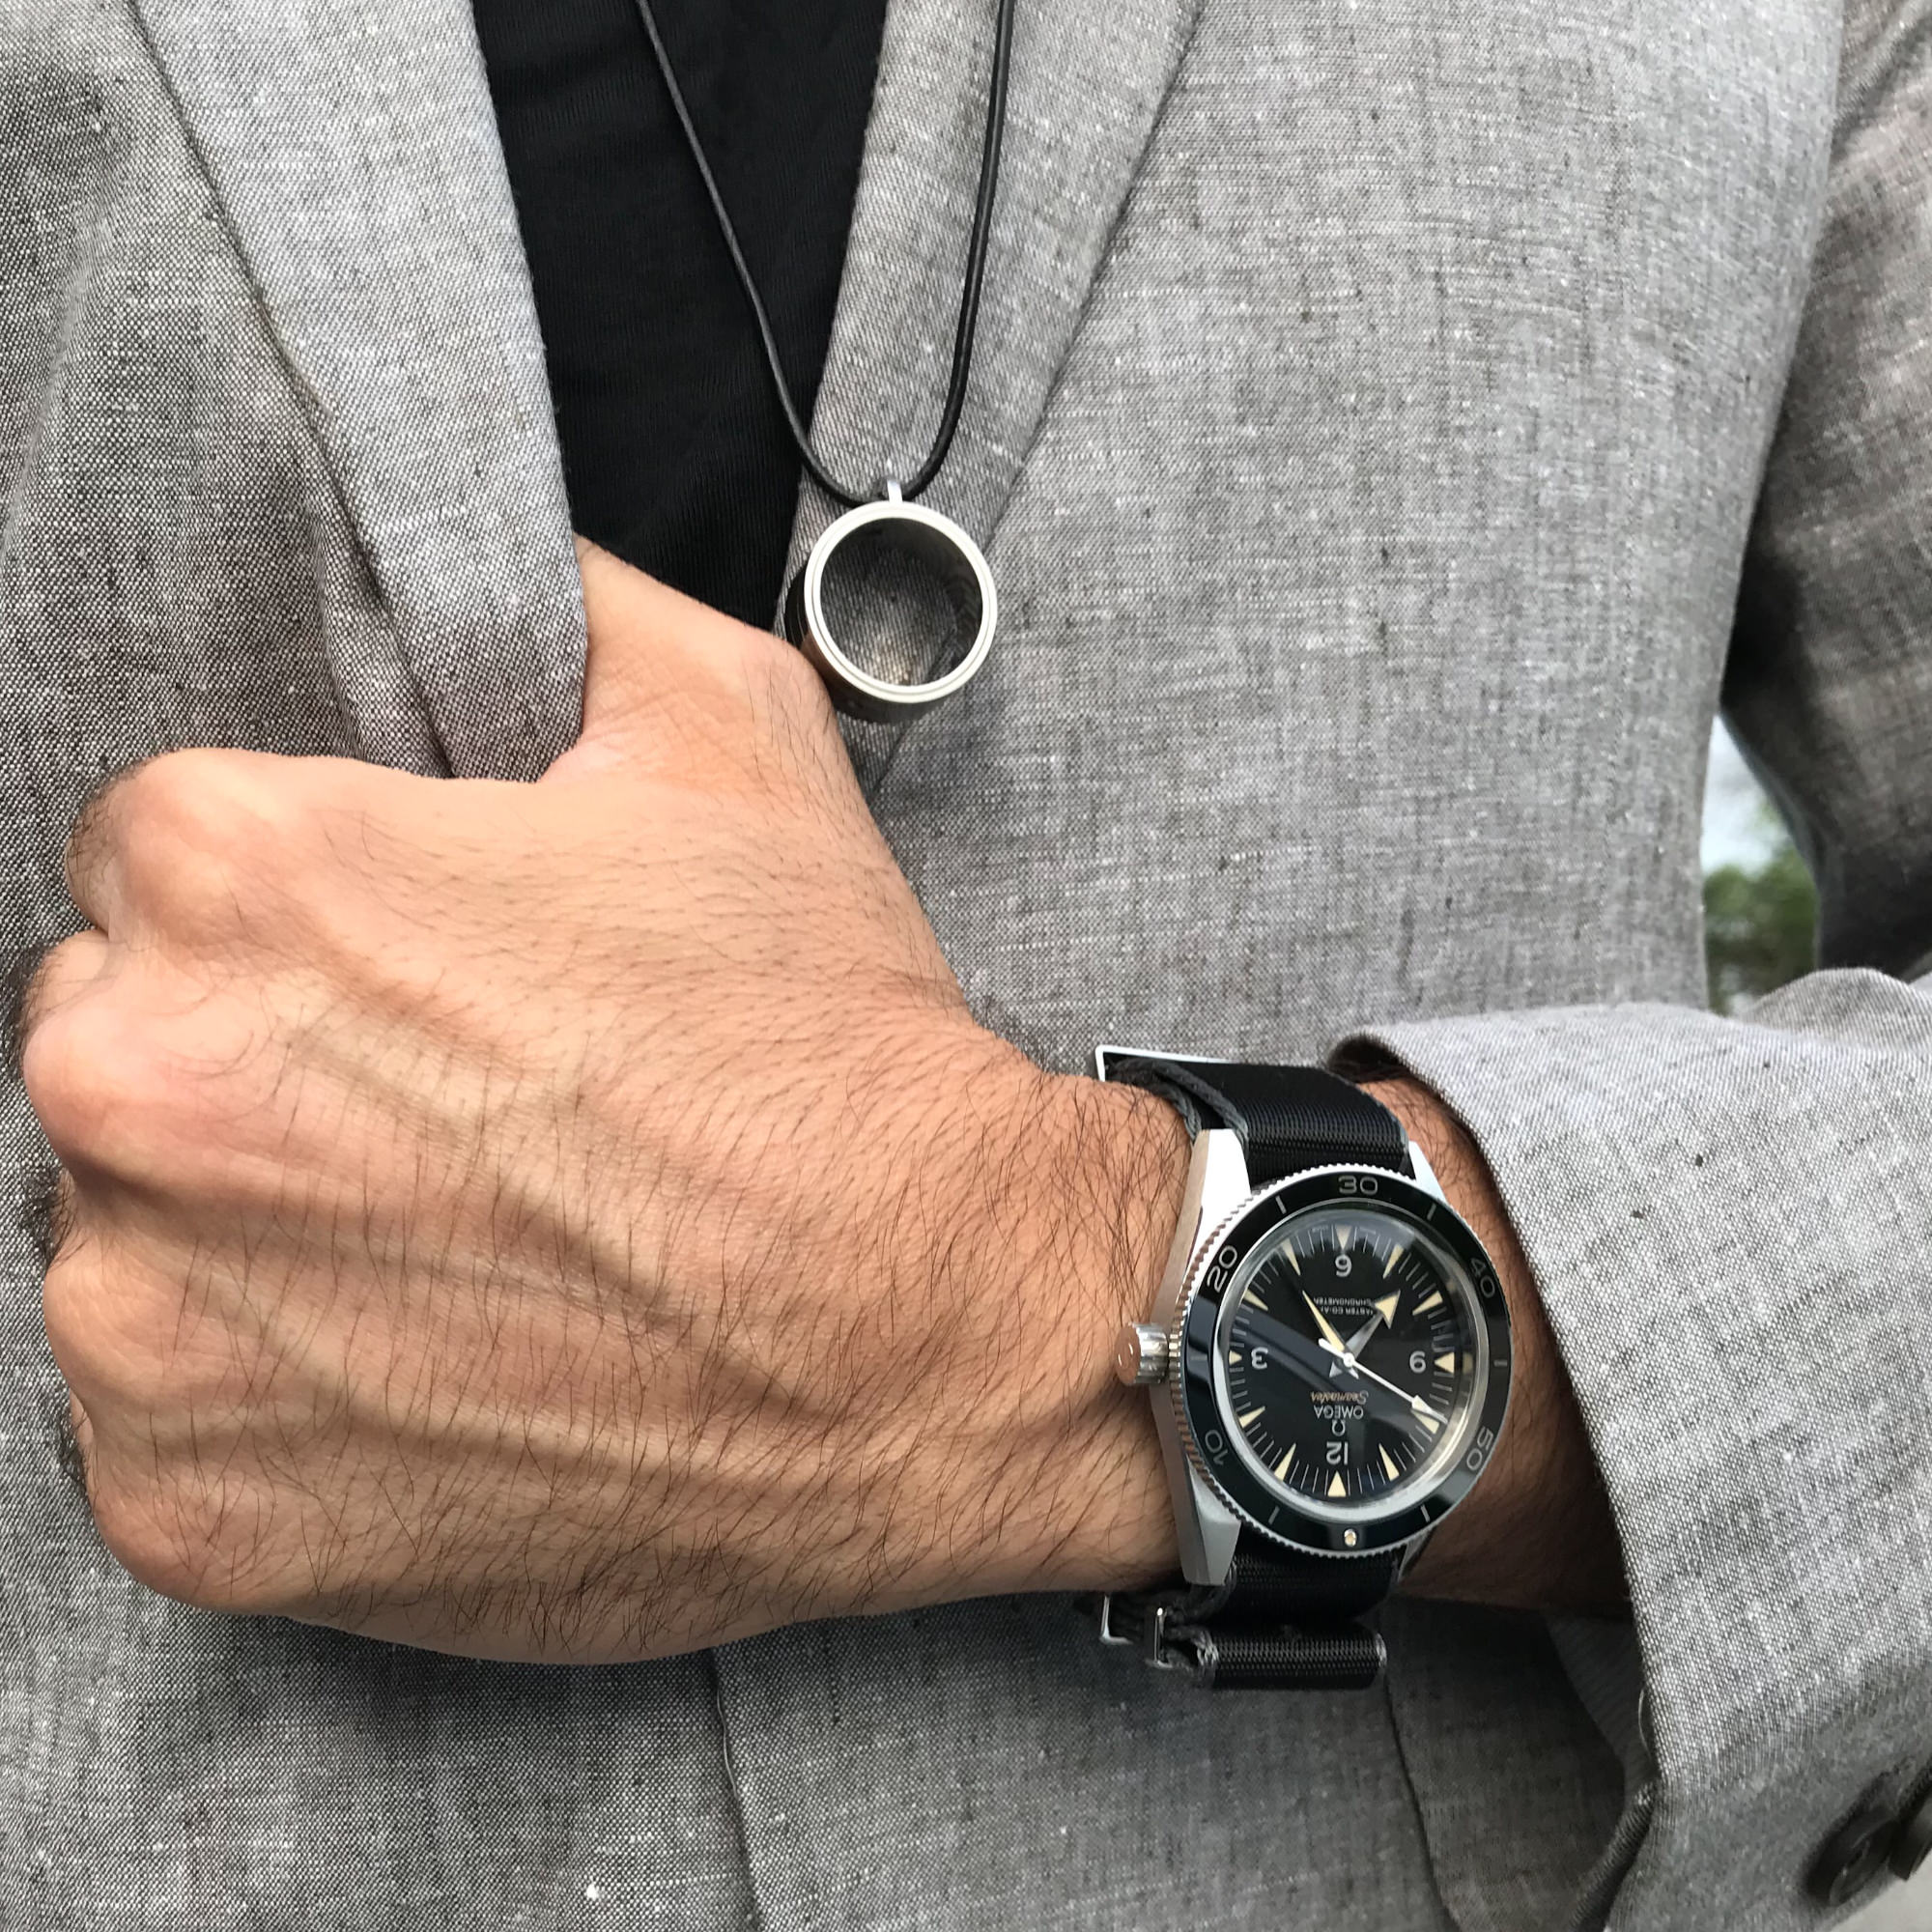 omega-seamaster-300-review-02